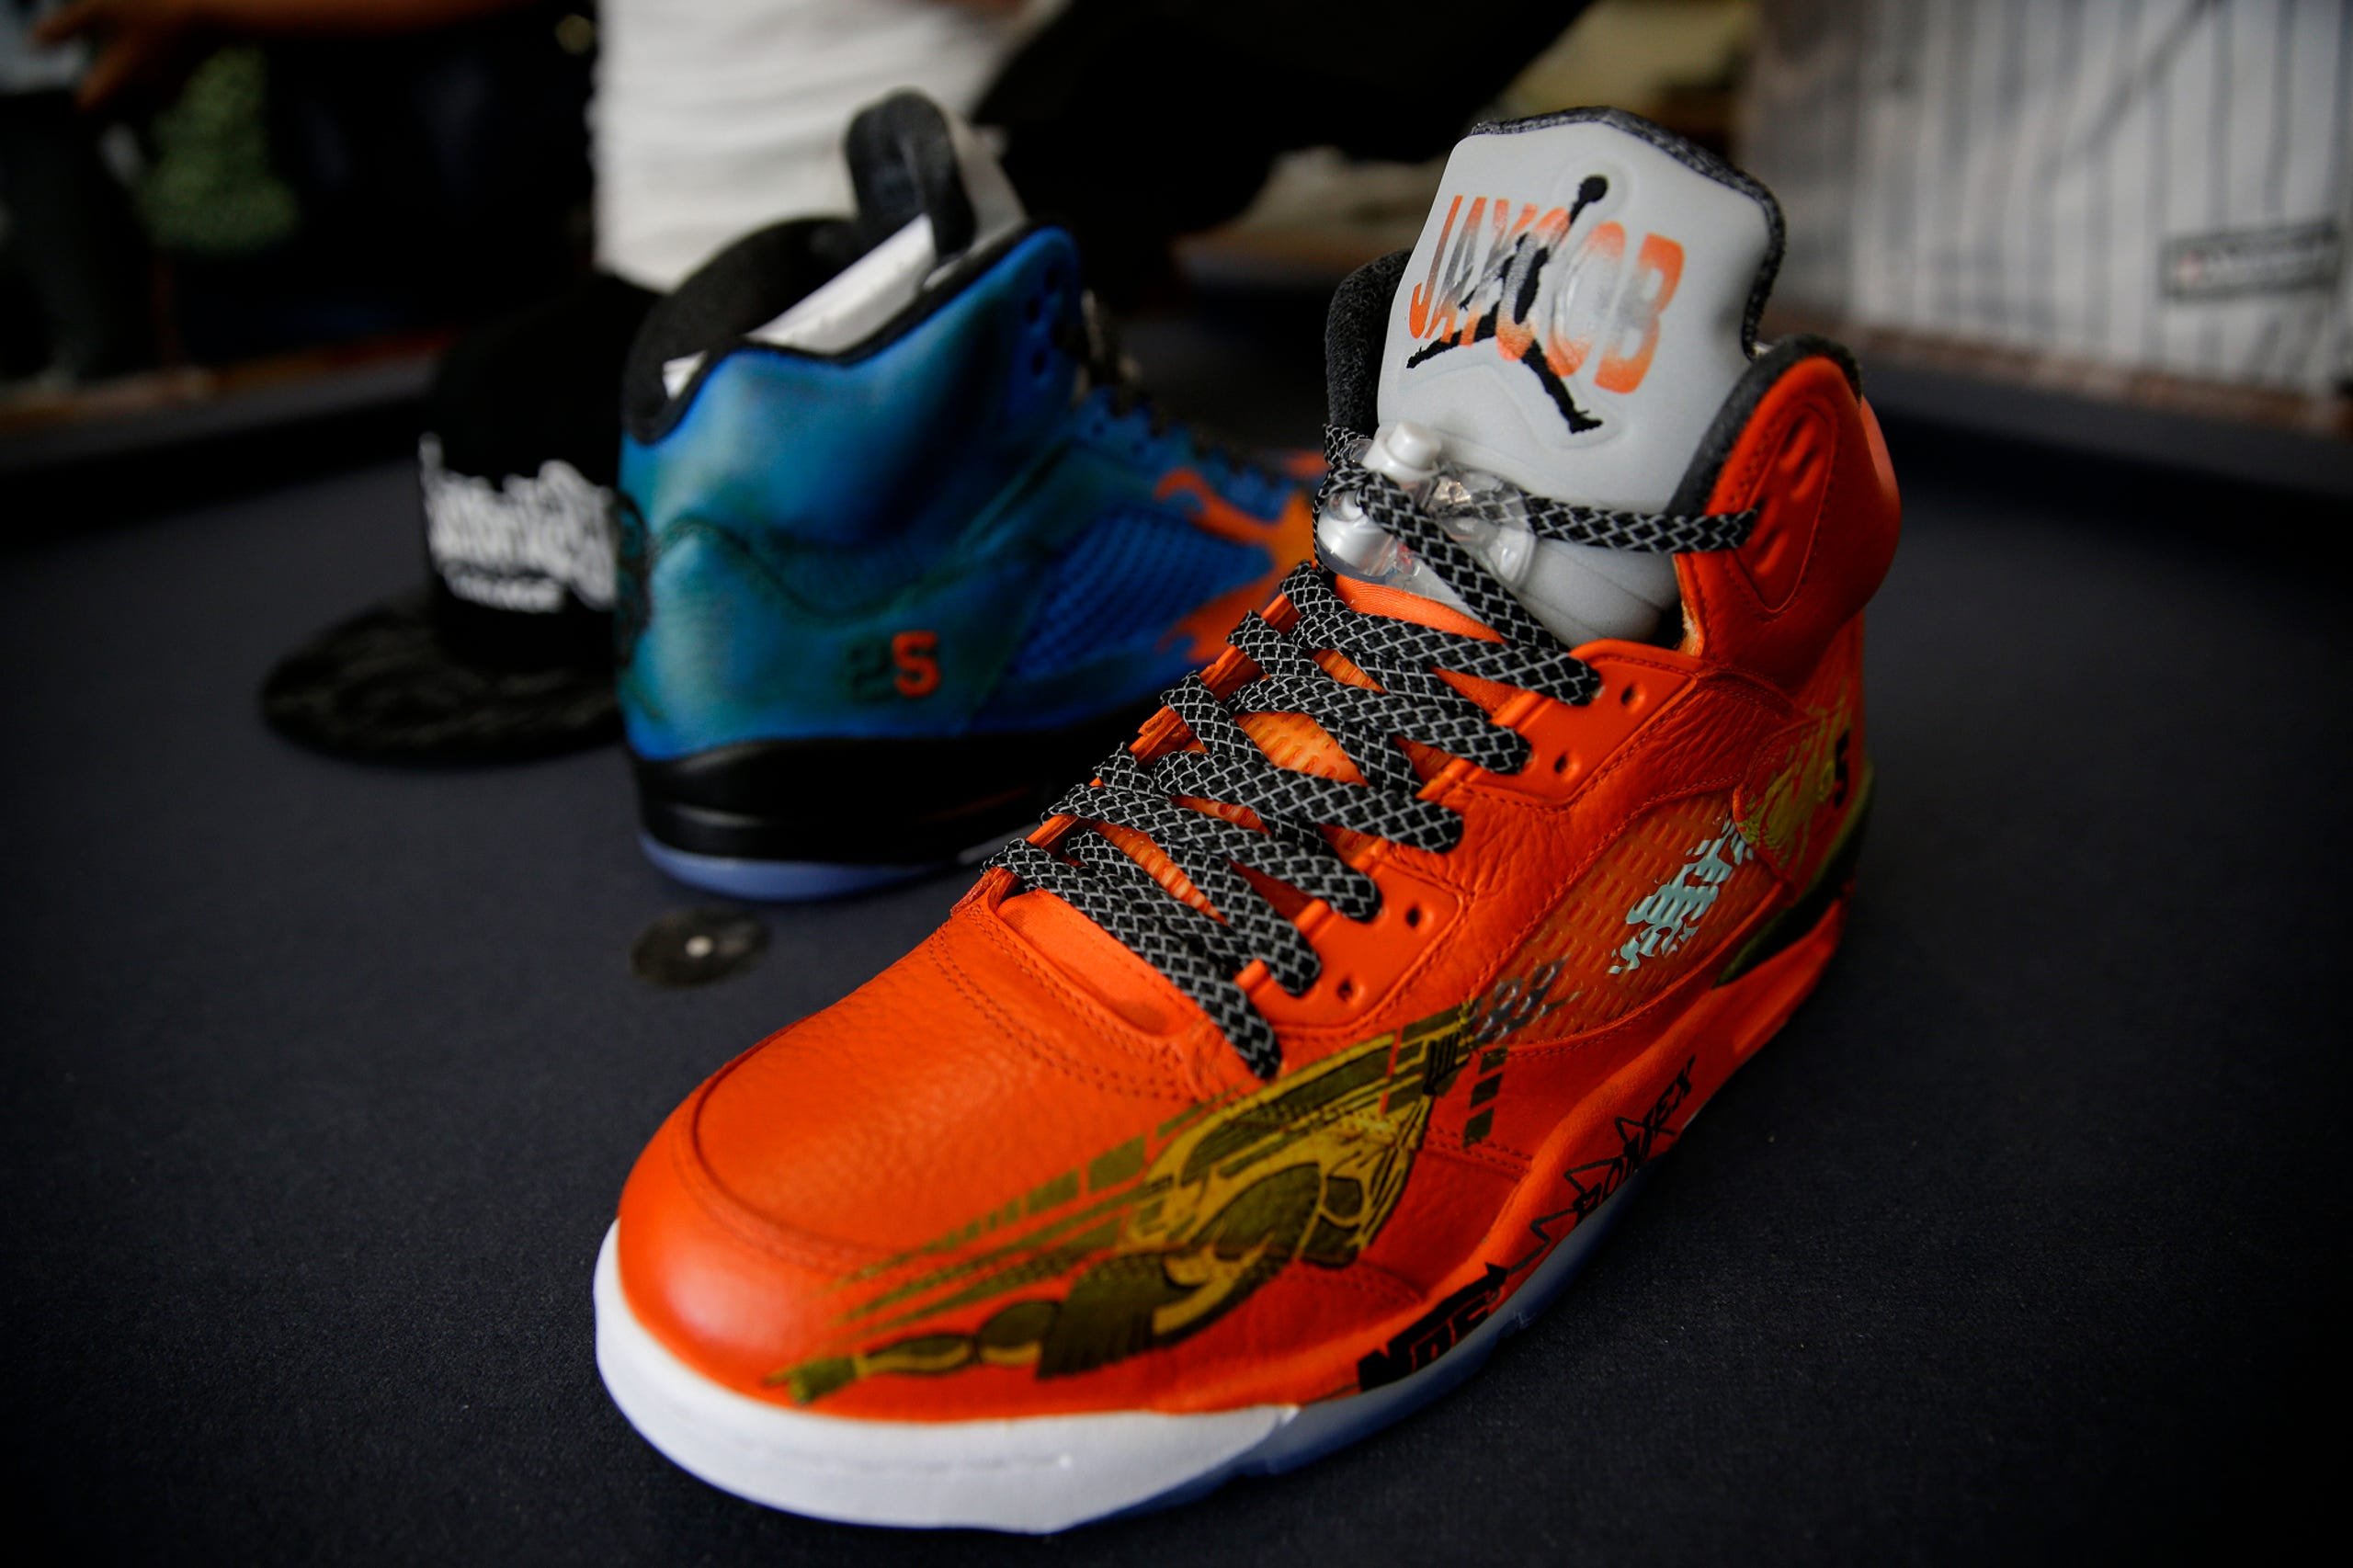 867c3c6e389 Custom painted pair of shoes to be given to Jaycob Solomon on July 23, 2016